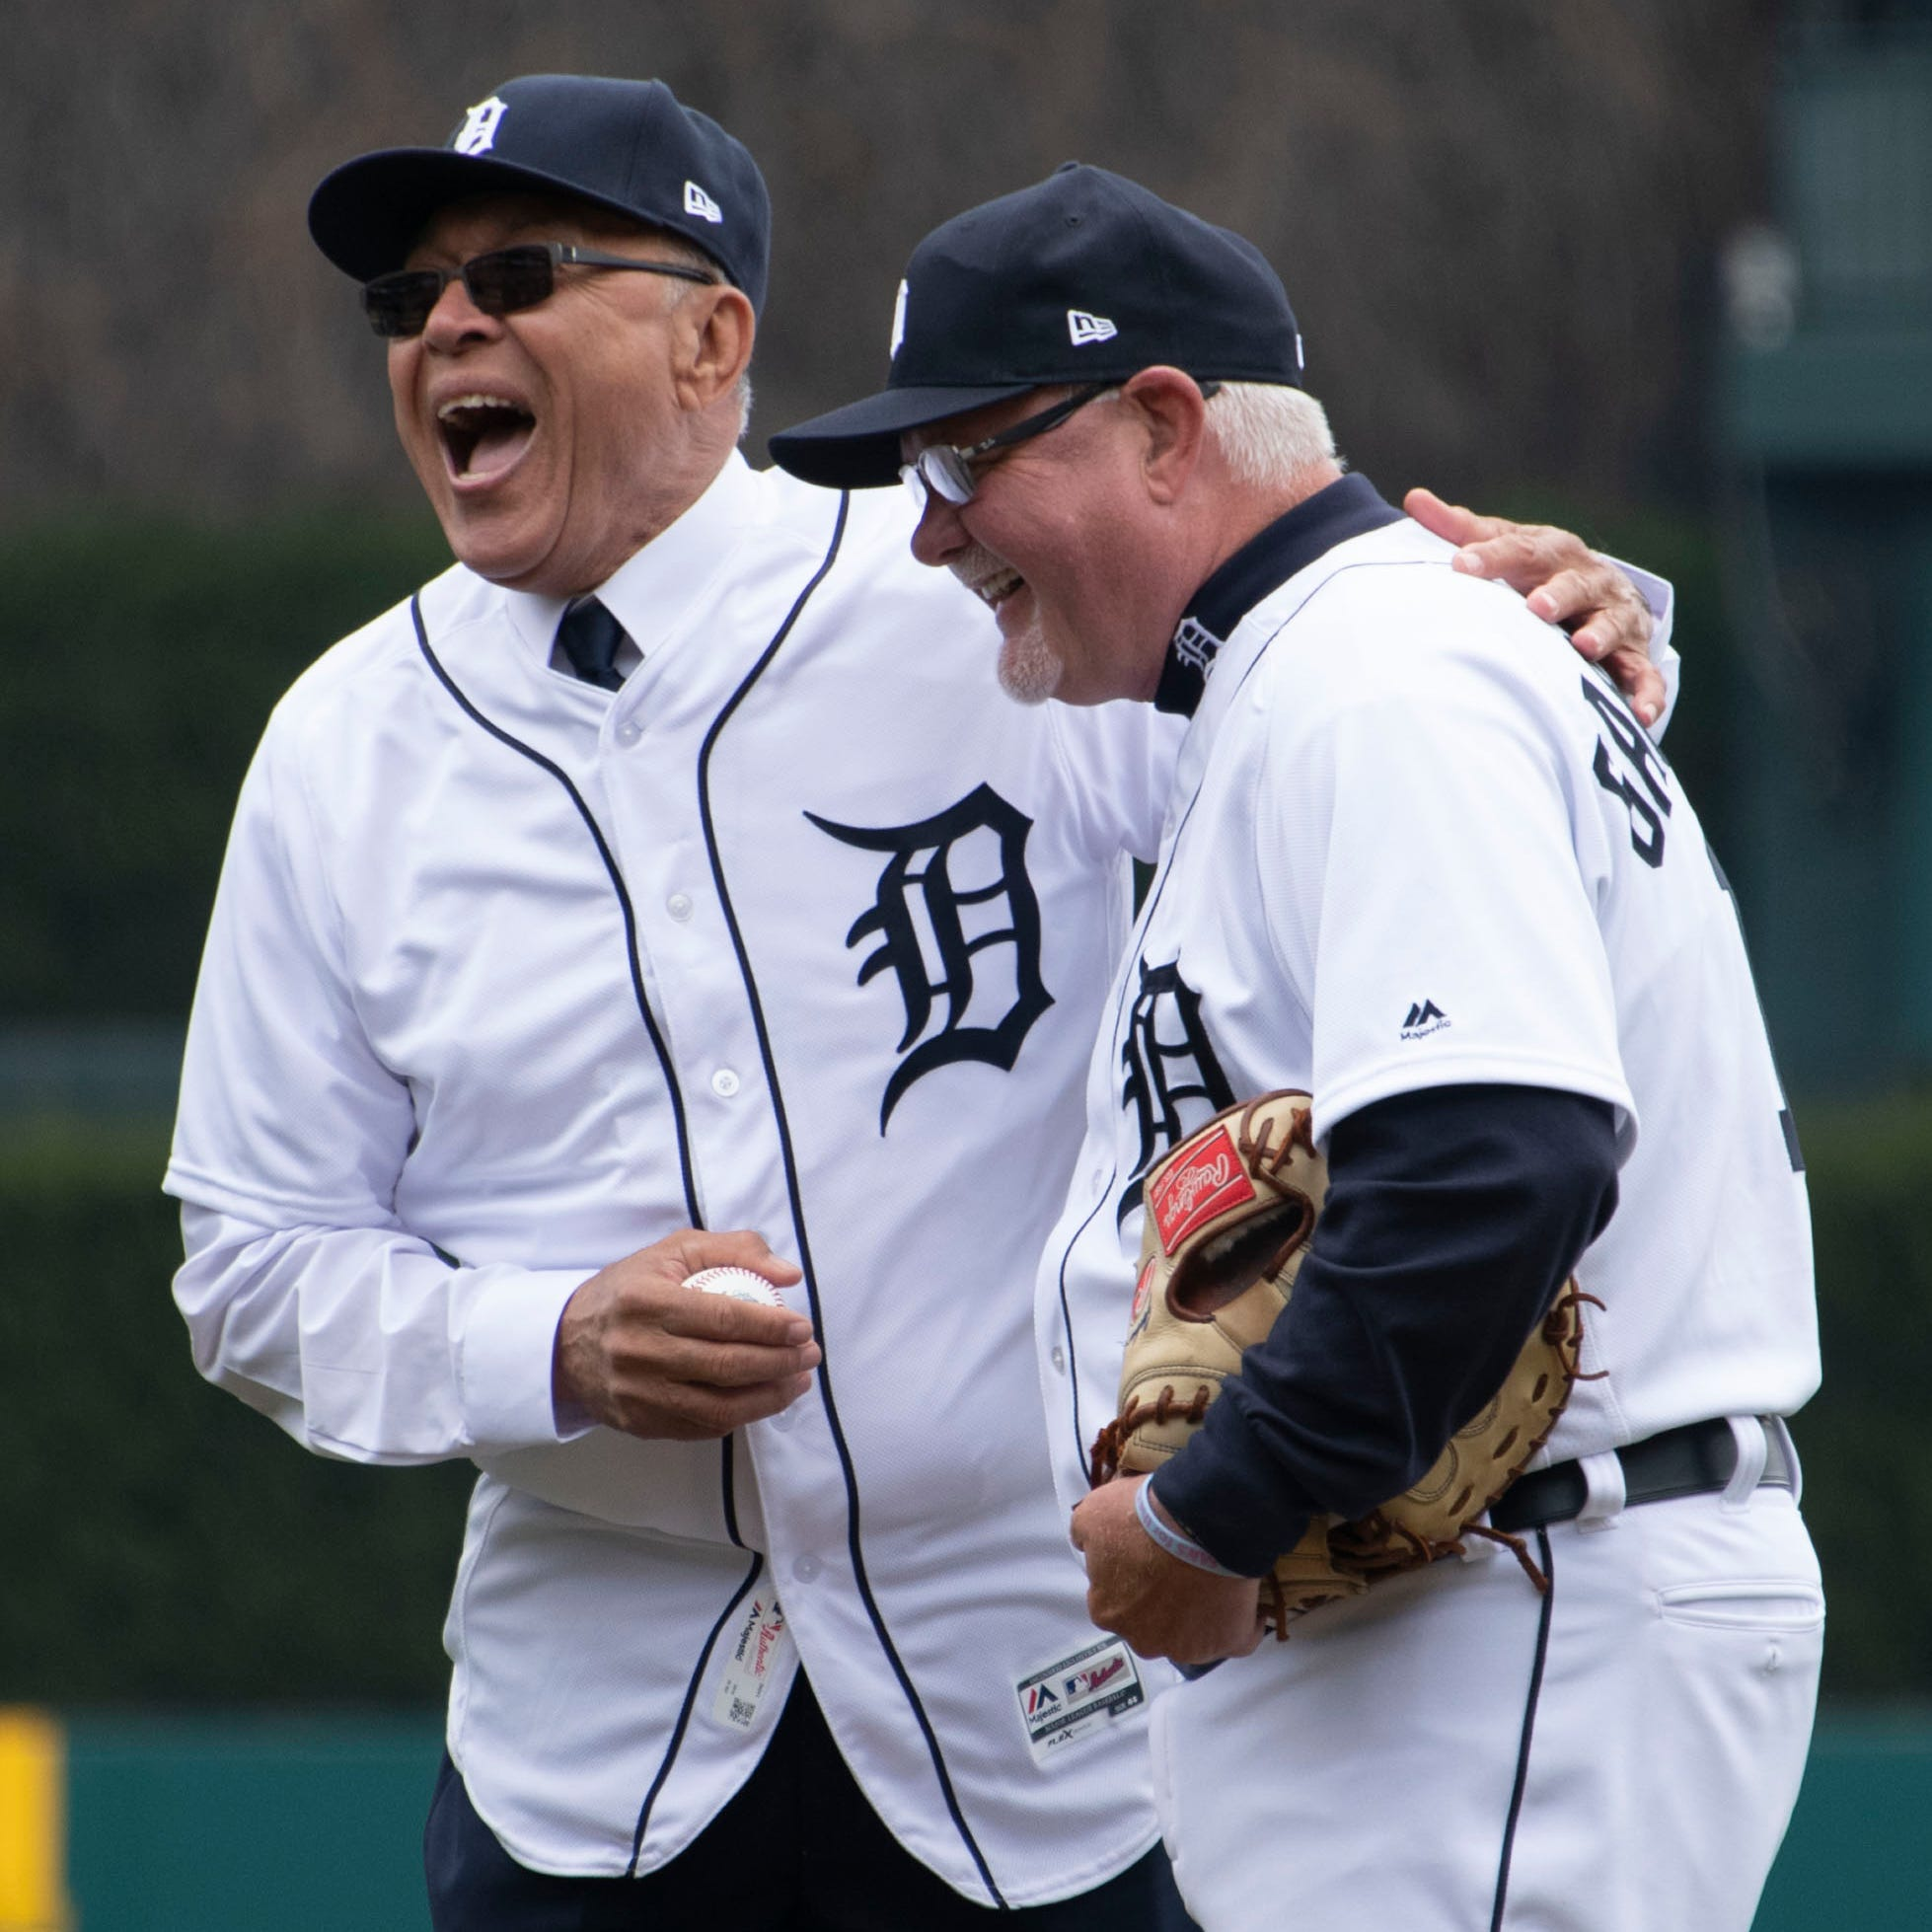 Willie Hernandez survived health scares, proud of Tigers Opening Day 'honor'